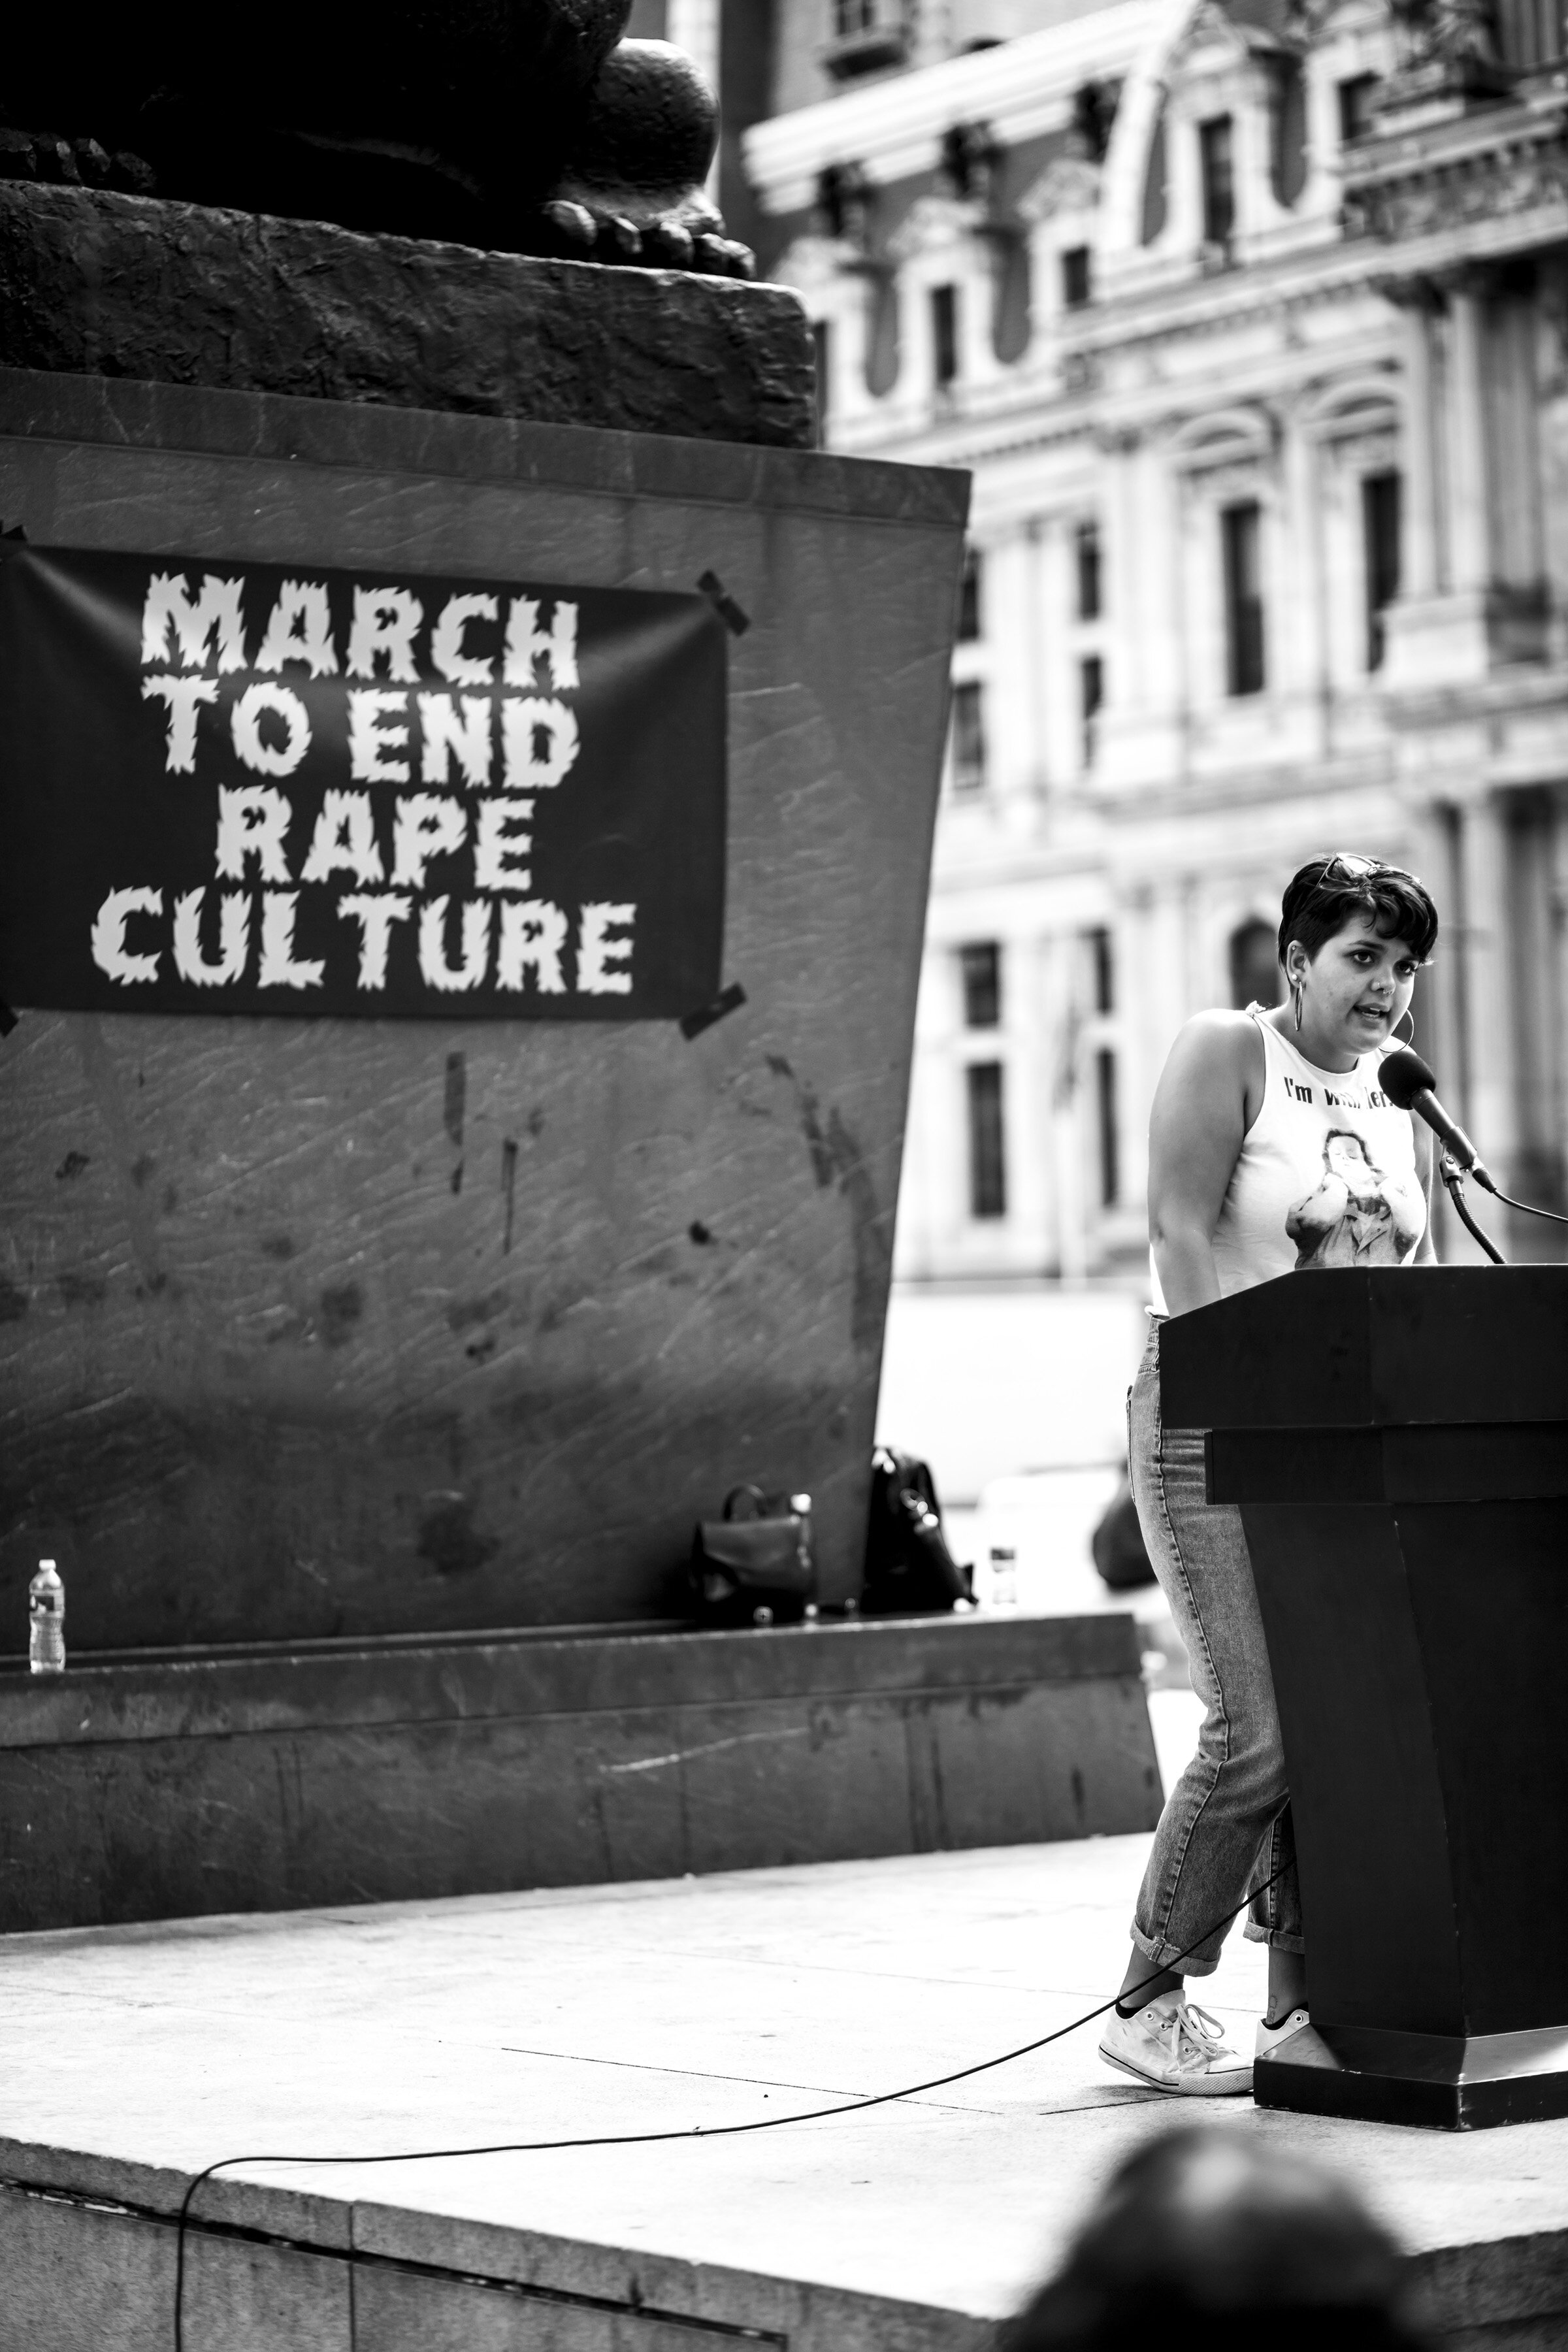 MarchToEndRapeCulture_2019_MikeArrison_BW_092919_0057.jpg